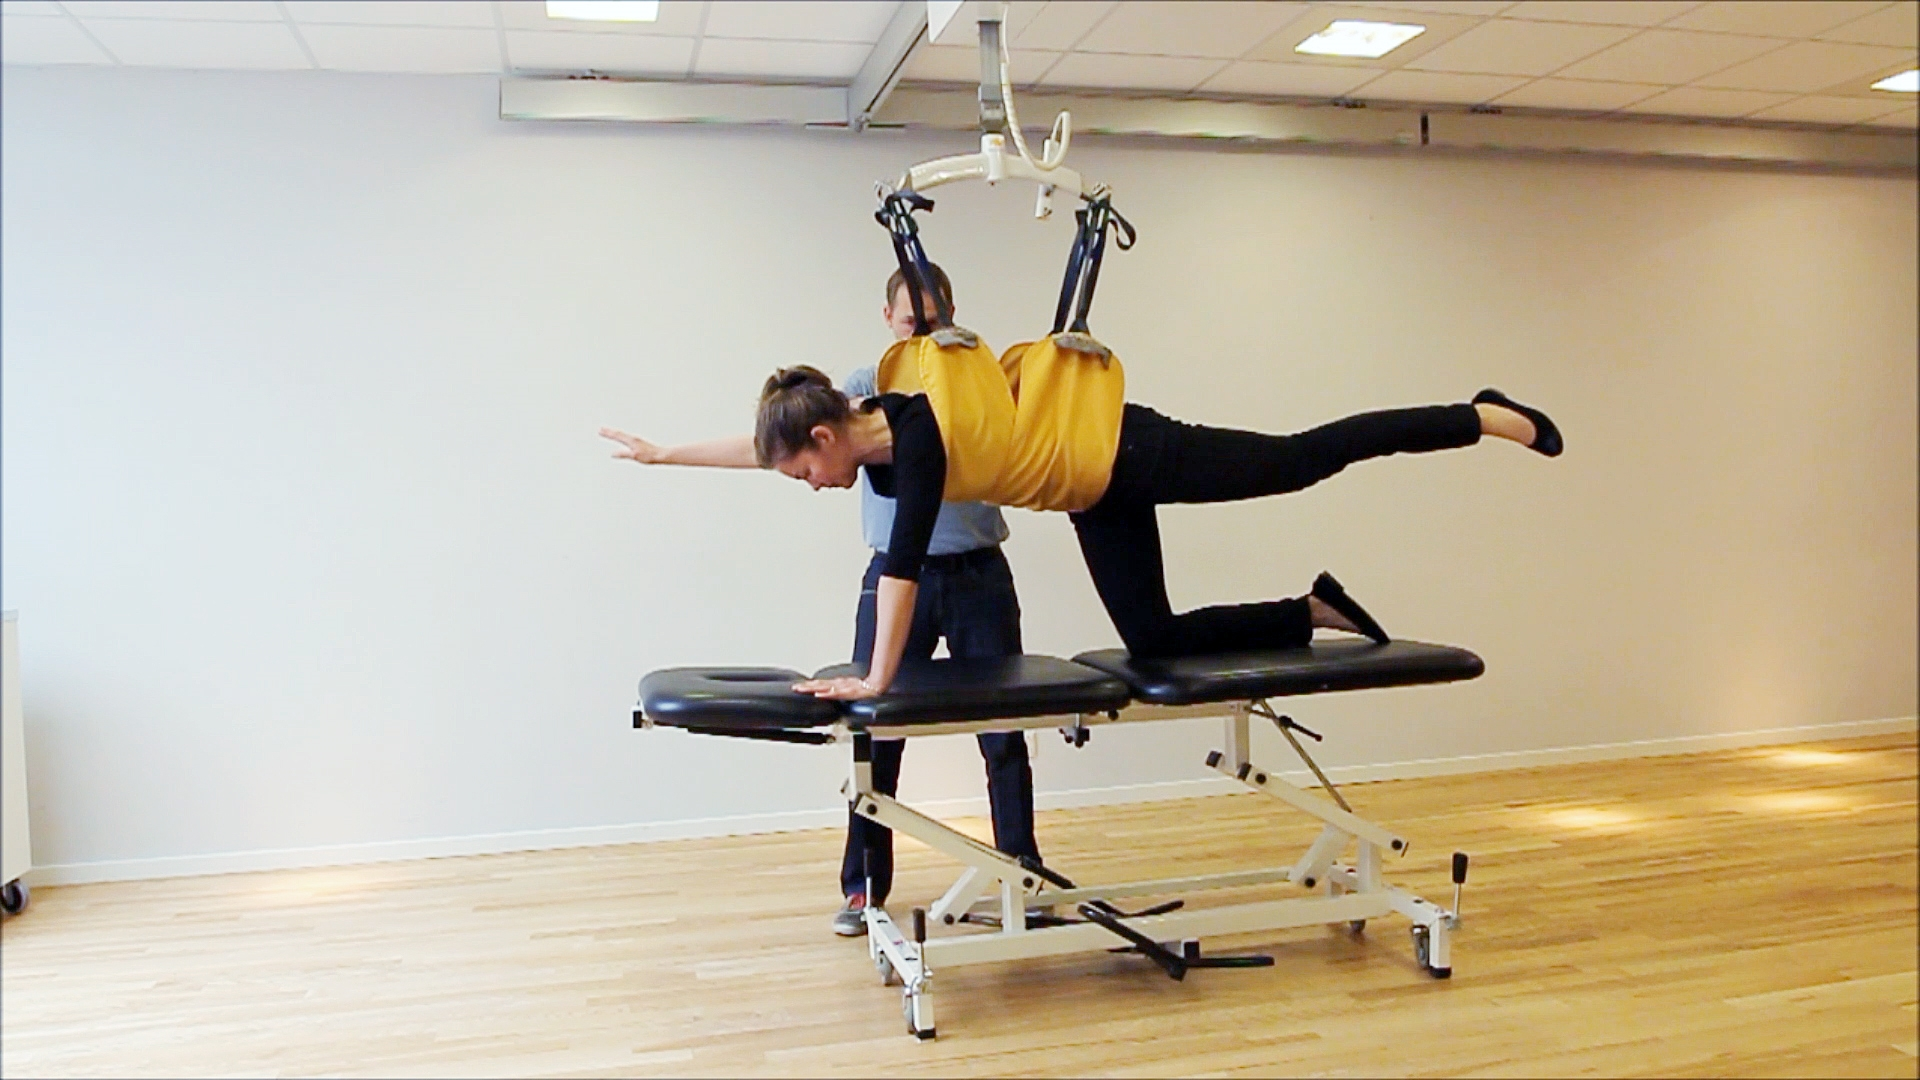 Rehabilitation exercise - Knee4Standing - diagonal lift on all four